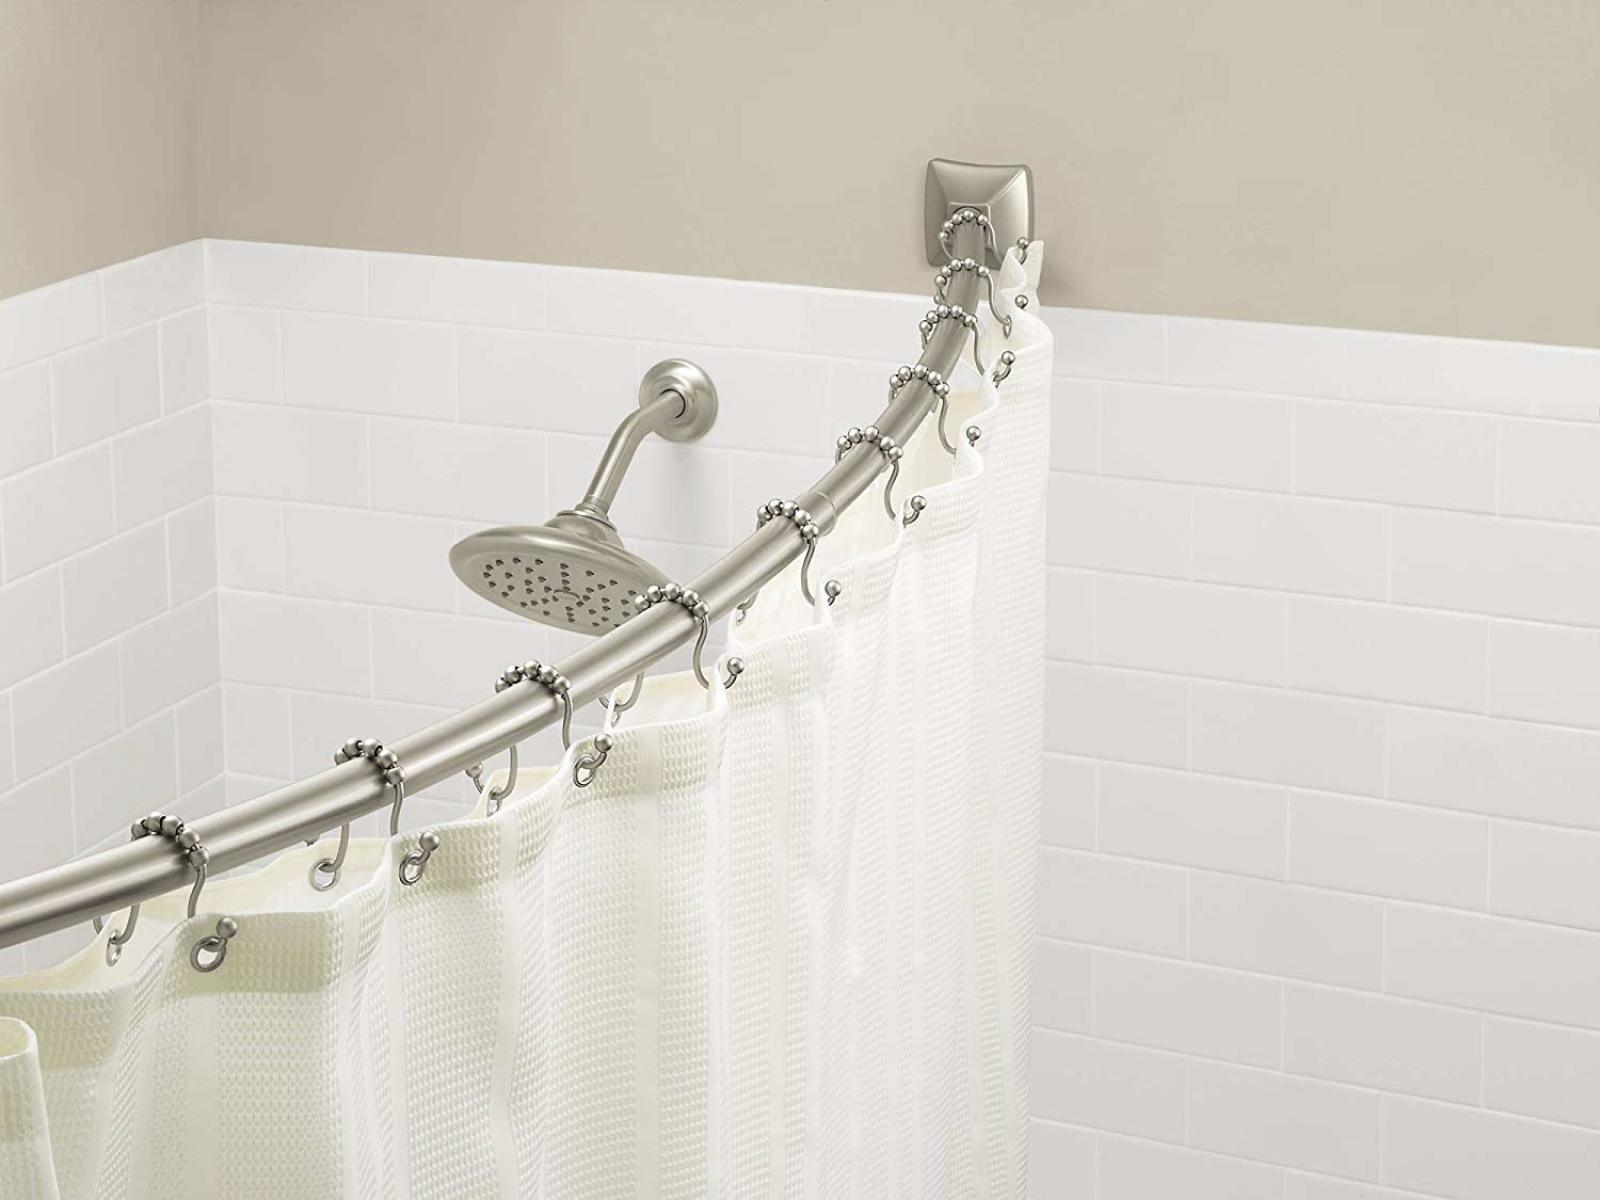 Details About Adjustable Curved Shower Curtain Rod Bathroom Bathtub Circular Bath Tub Bar Rail